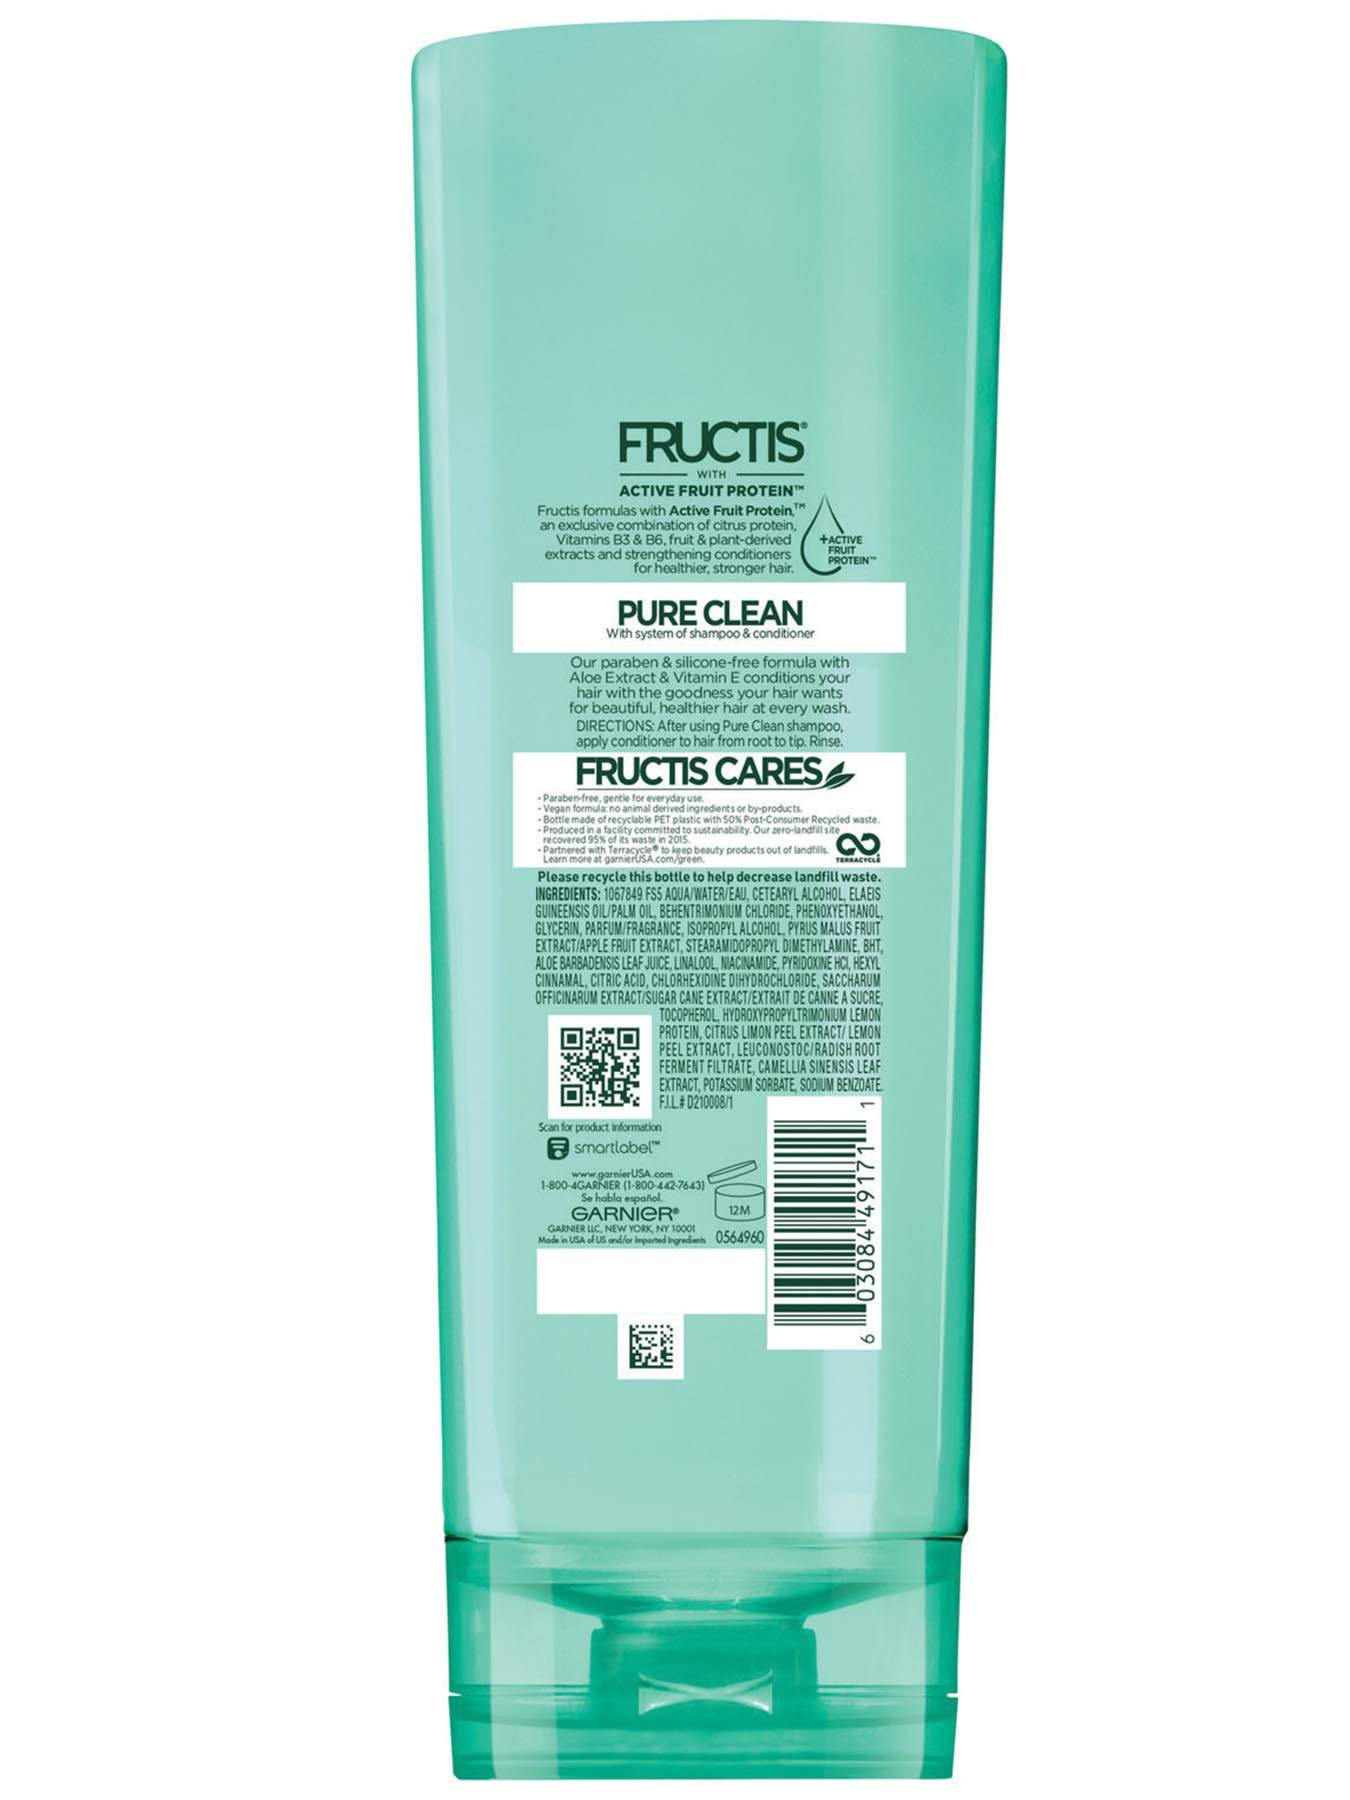 Garnier Fructis Pure Clean Conditioner 12 oz Back